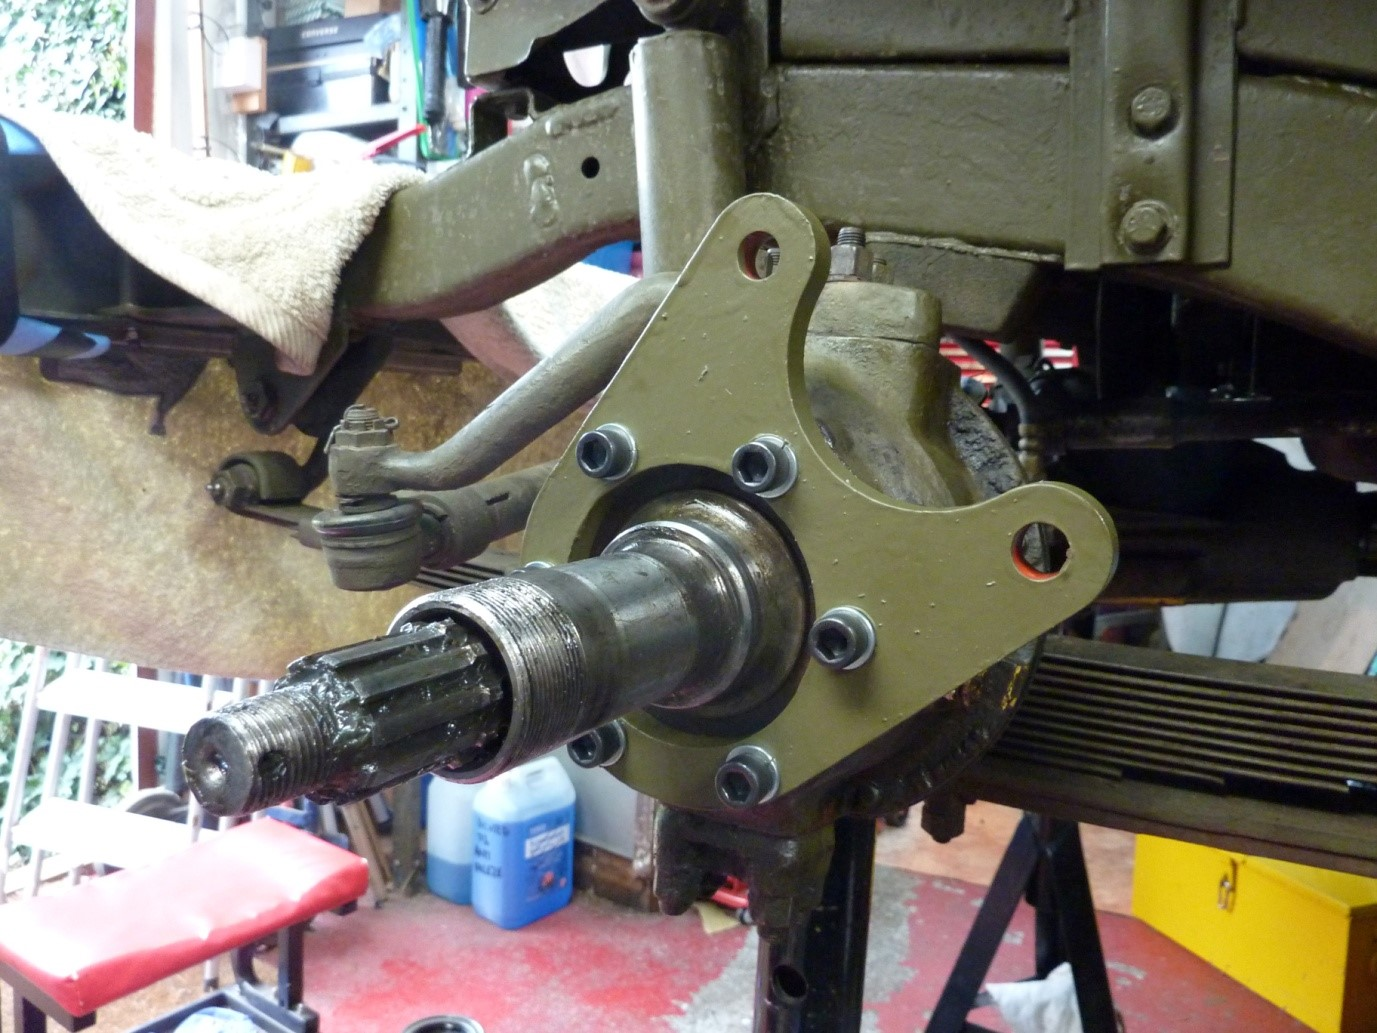 Bracket fitted at about one thirty position. This way the calliper doesn't obstruct access to the knuckle grease plug